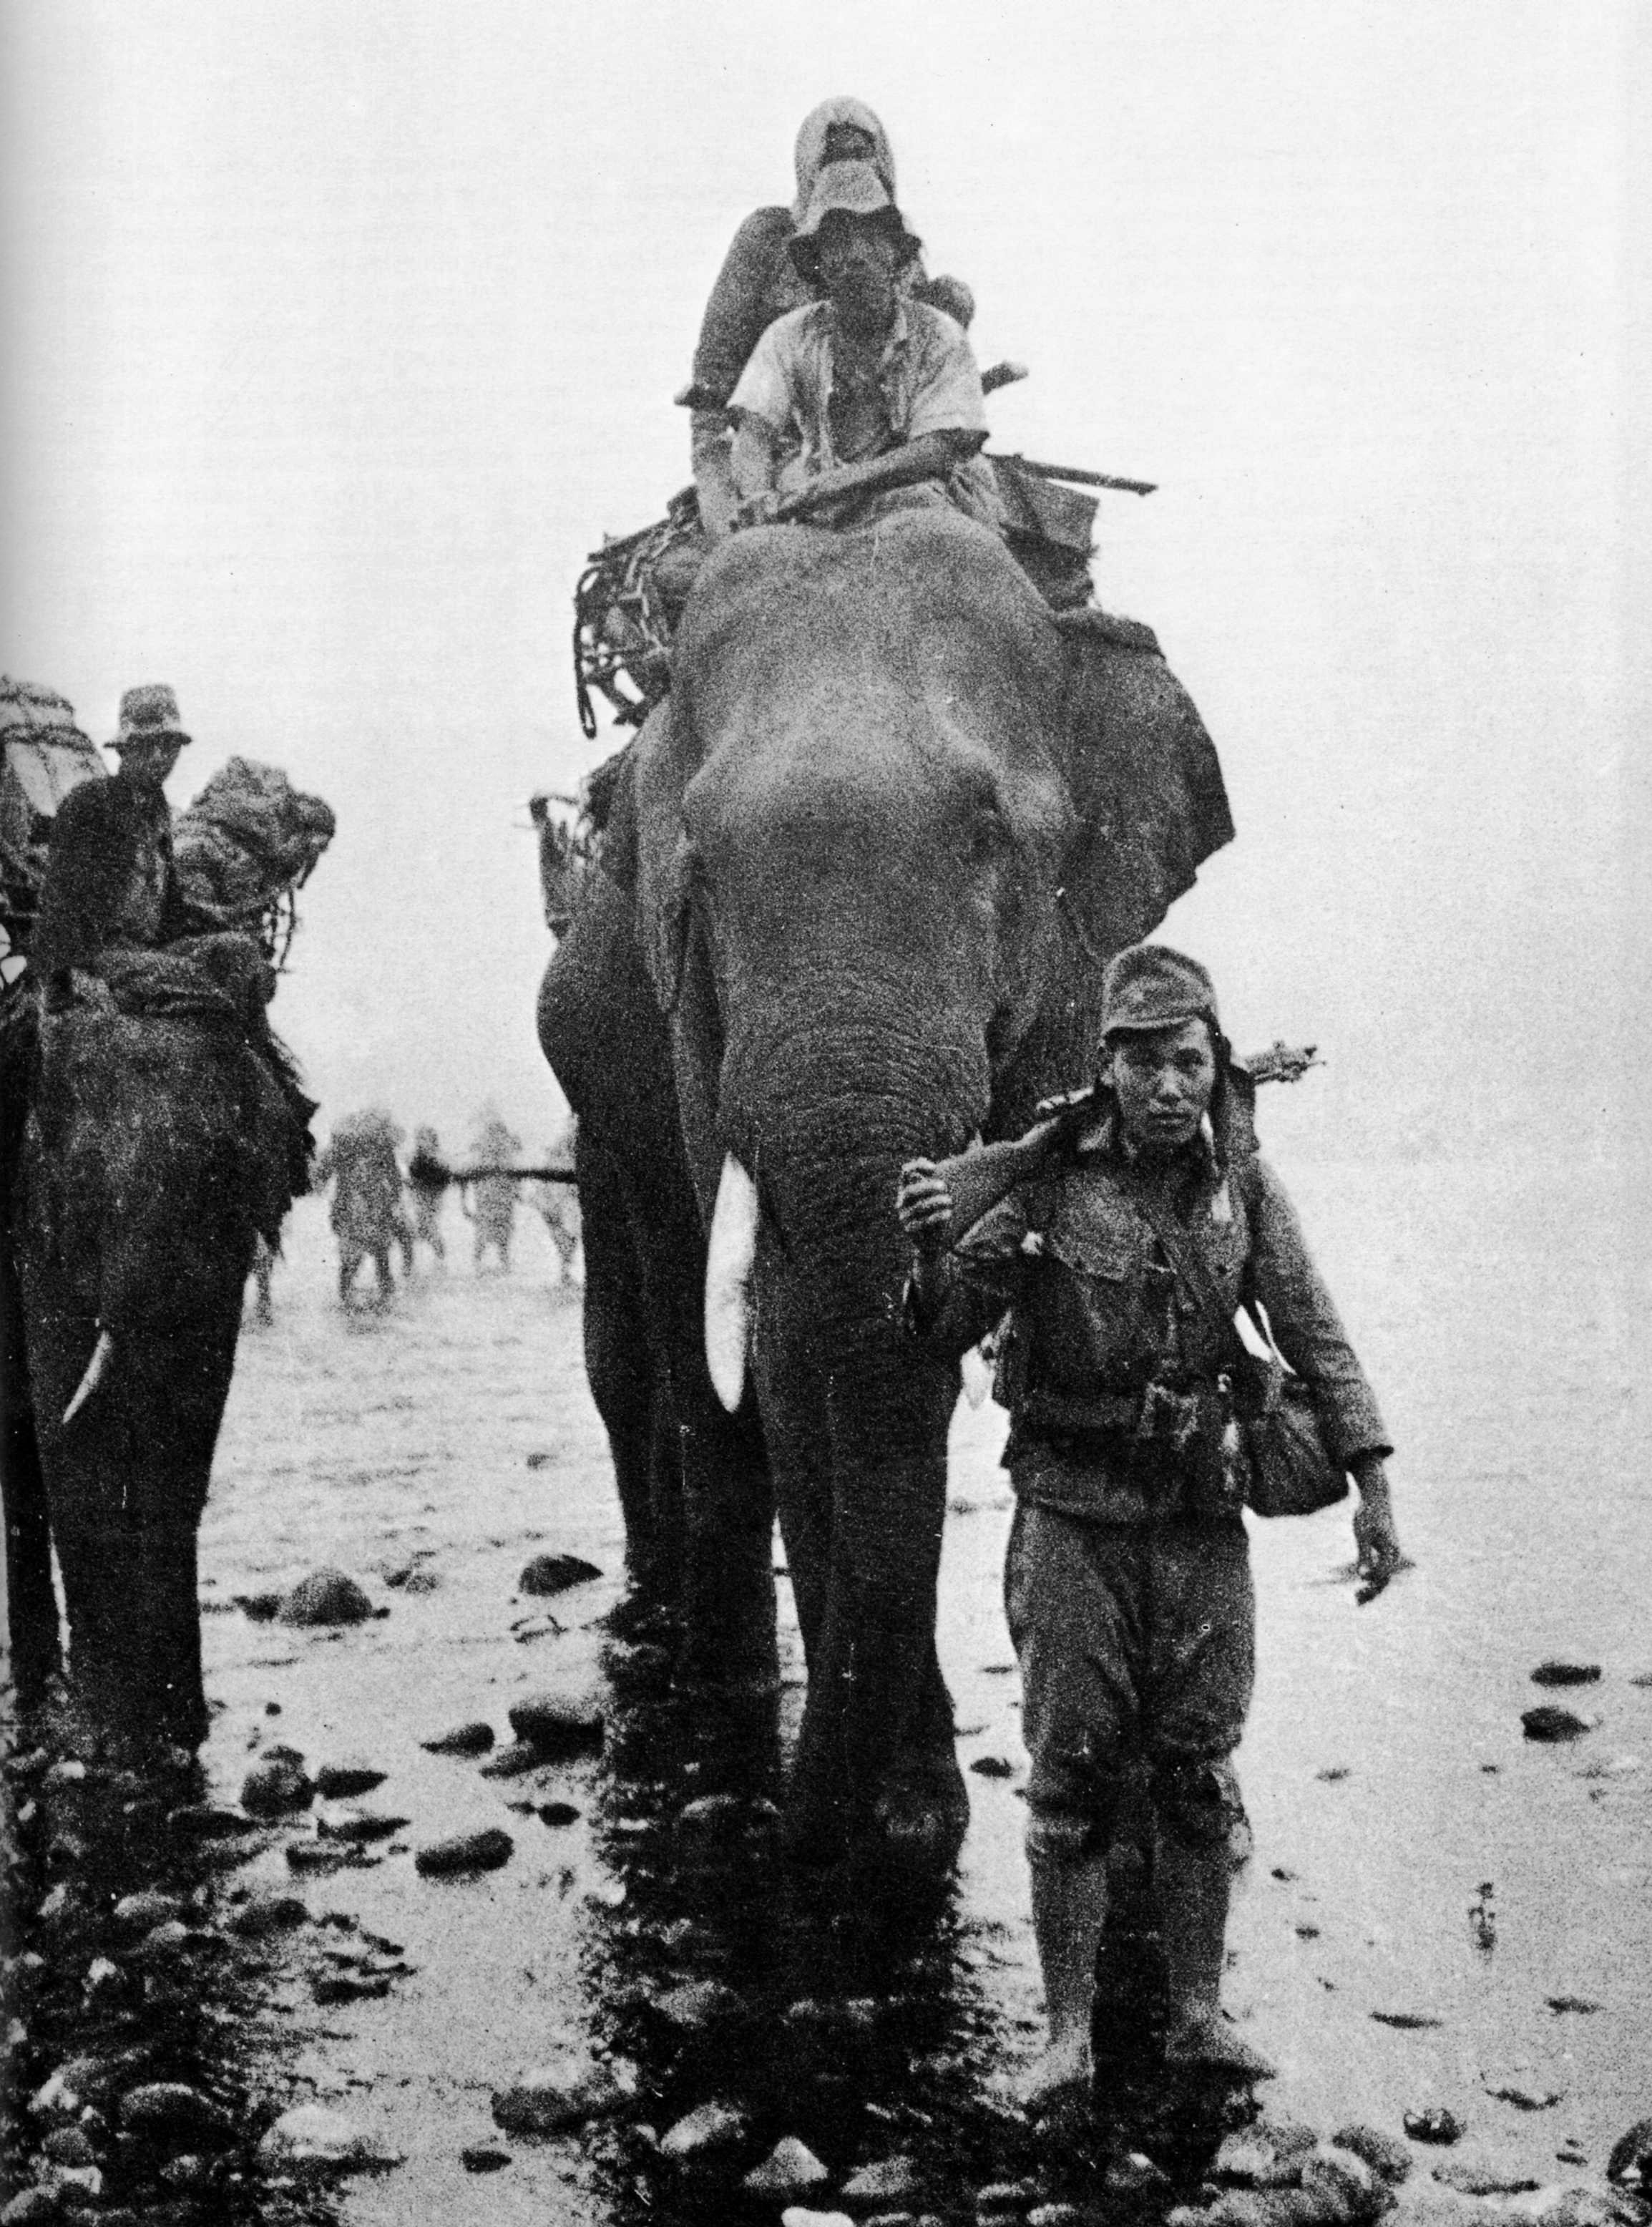 Japan Stock Market Historical Chart: Japanese troops on elephant in Burma.jpg - Wikimedia Commons,Chart